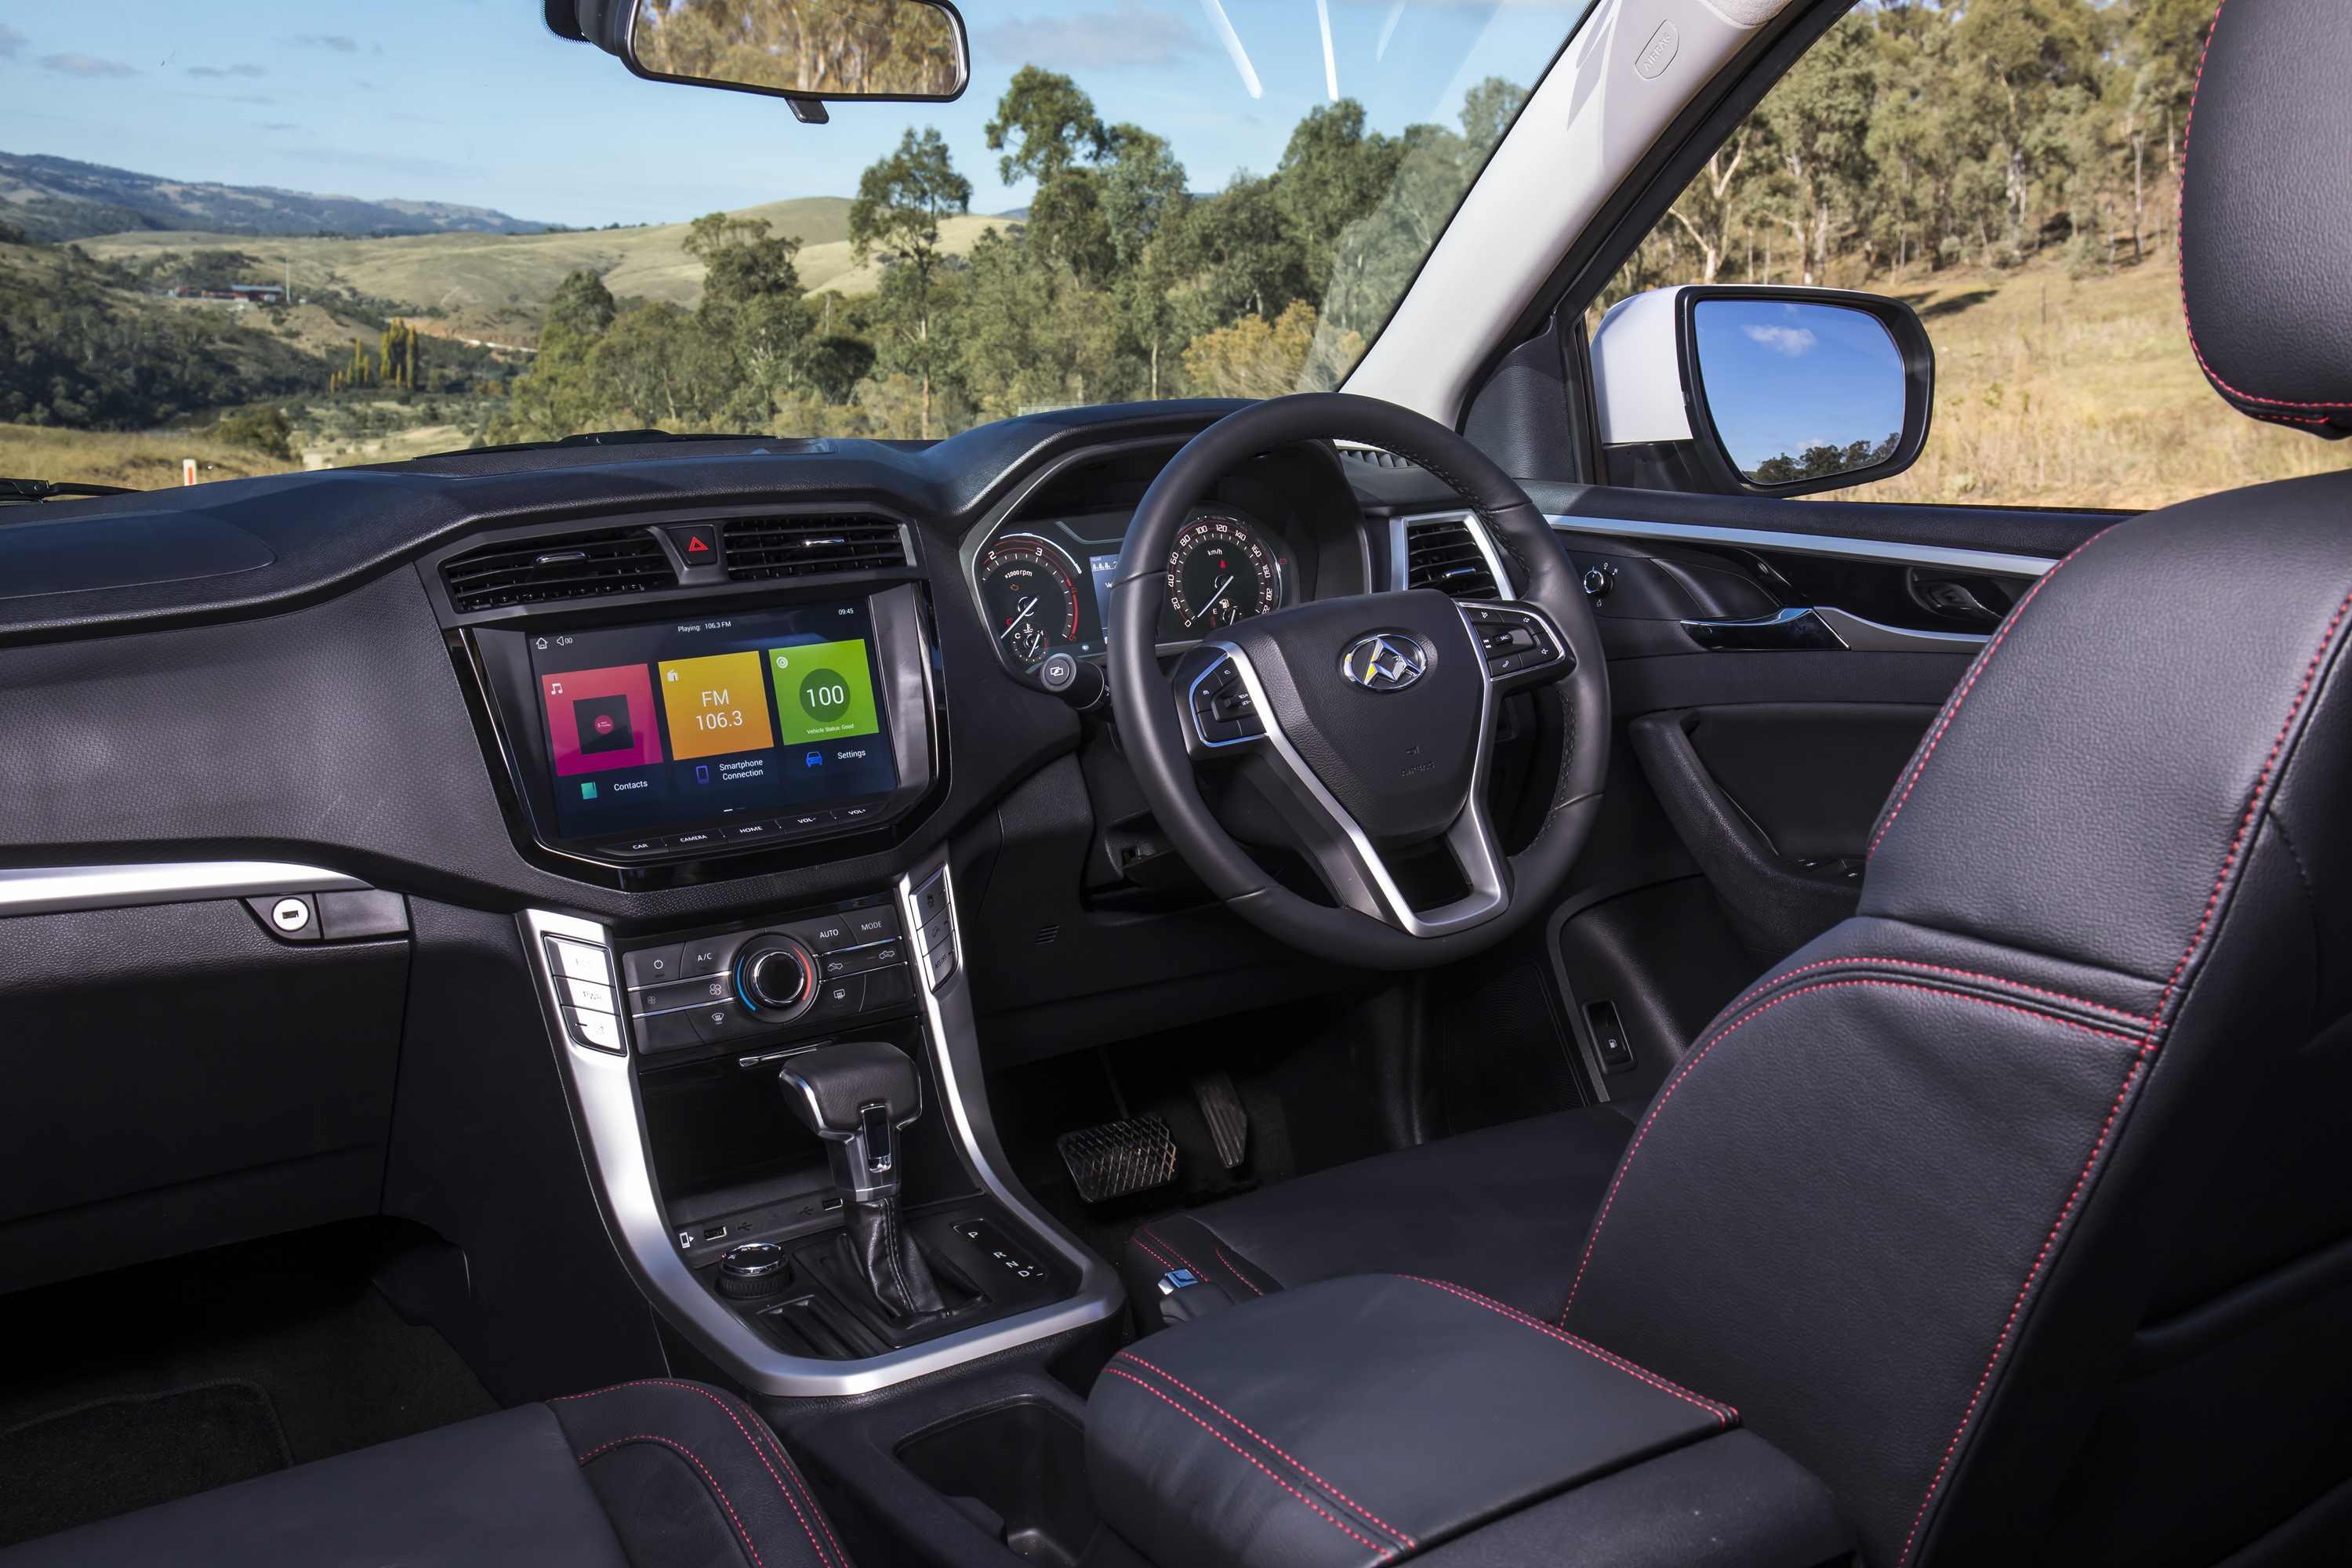 2019 LDV T60 Trailrider interior